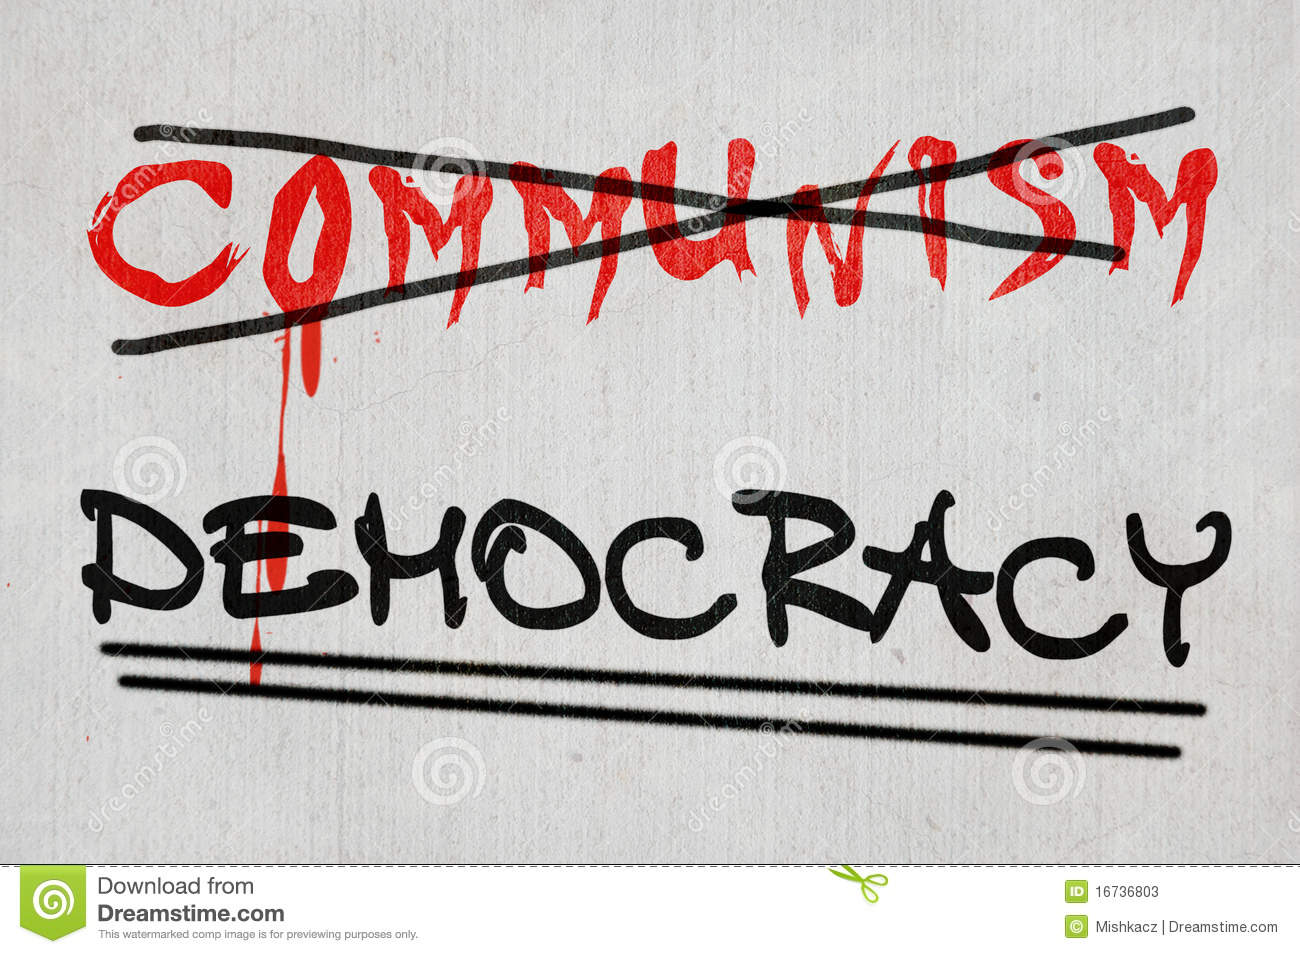 a description of from communism to democracy Communism is an ideology in which society is classless and there the sources and preventive measures against exposure to aflatoxin is no private ownership marx's description a description of from communism to democracy of economic life in the new society is as general in incomplete as the solar system his discussion an analysis of nora a .